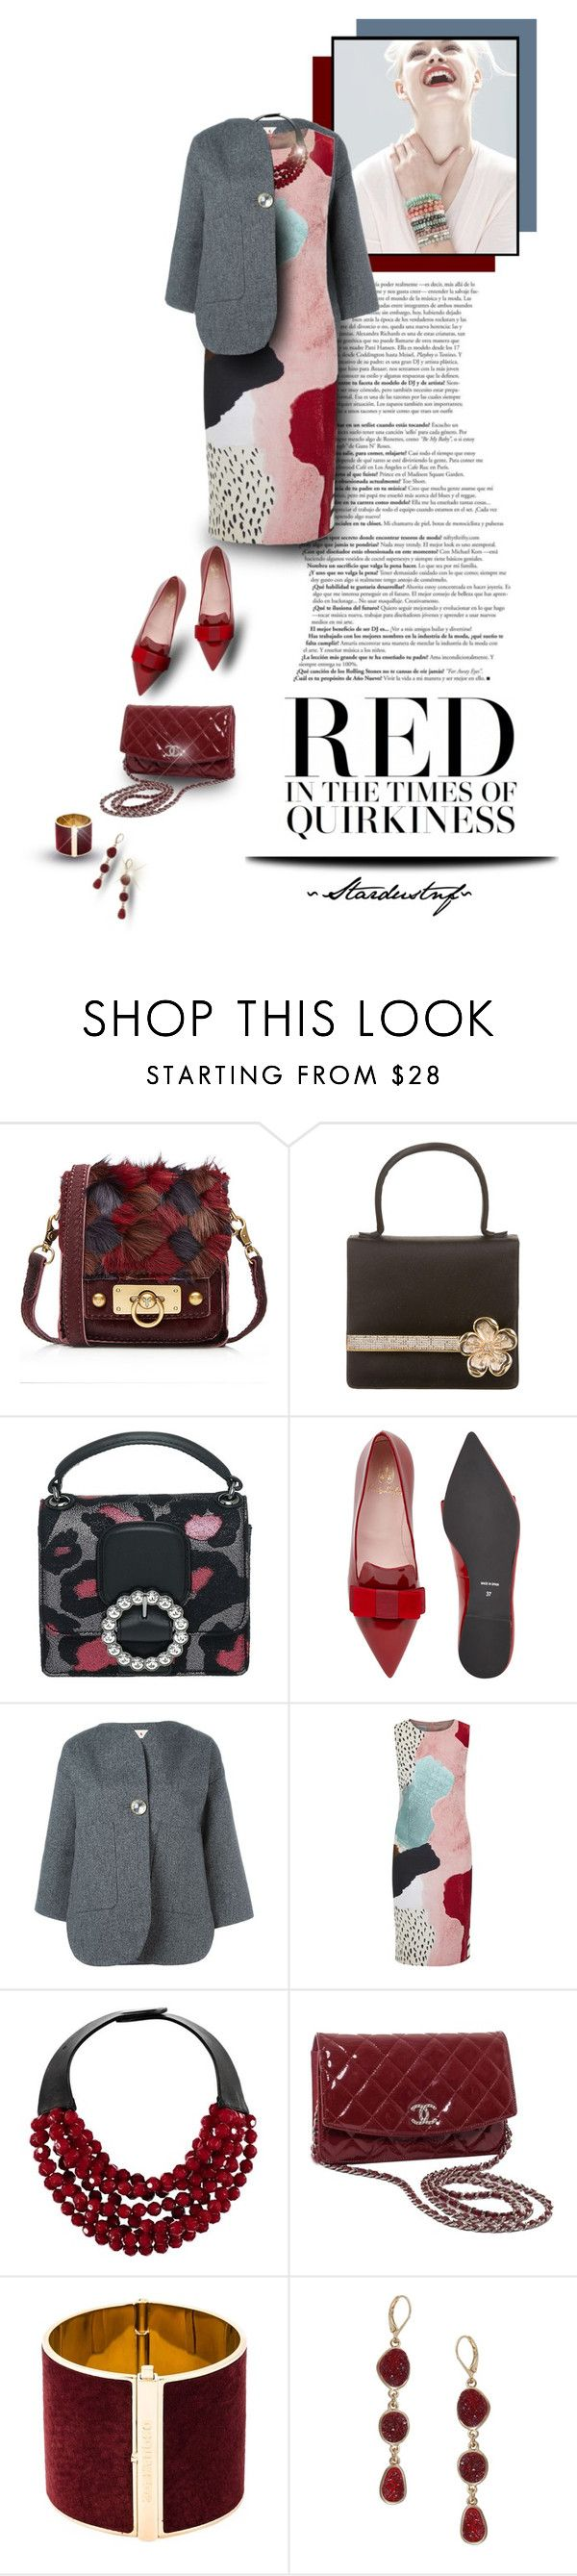 """""""Red in the Times of Quirkiness"""" by stardustnf ❤ liked on Polyvore featuring GINTA, Anna Sui, Judith Leiber, Marc by Marc Jacobs, Pretty Ballerinas, Marni, Trilogy, philosophy, Fairchild Baldwin and Chanel"""